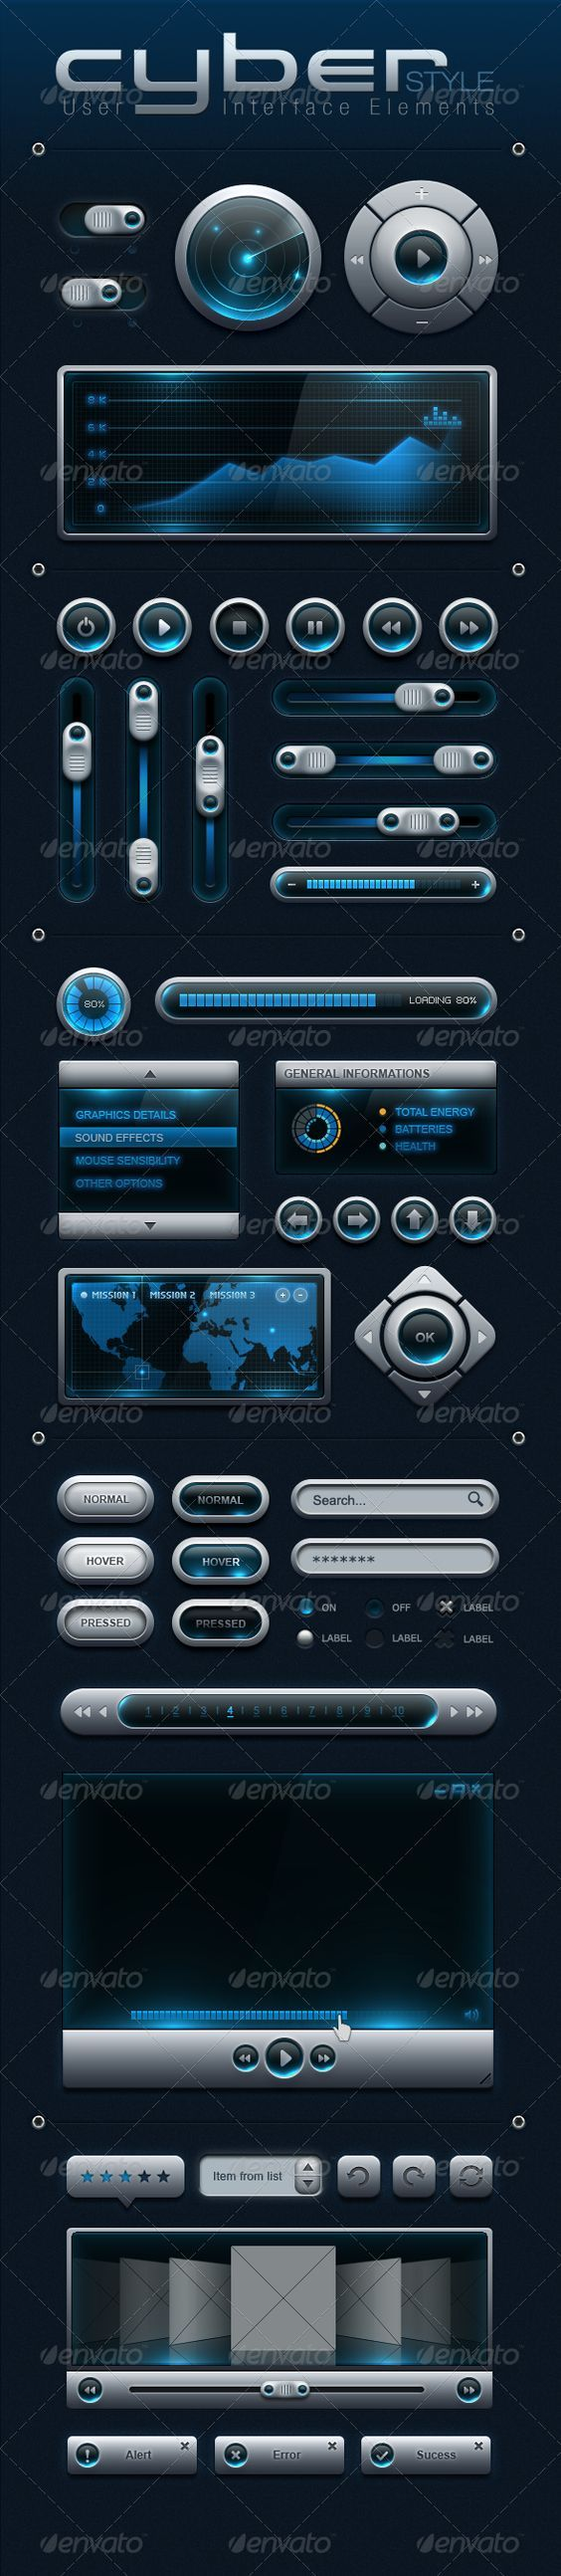 CYBER Style User Interface Elements: